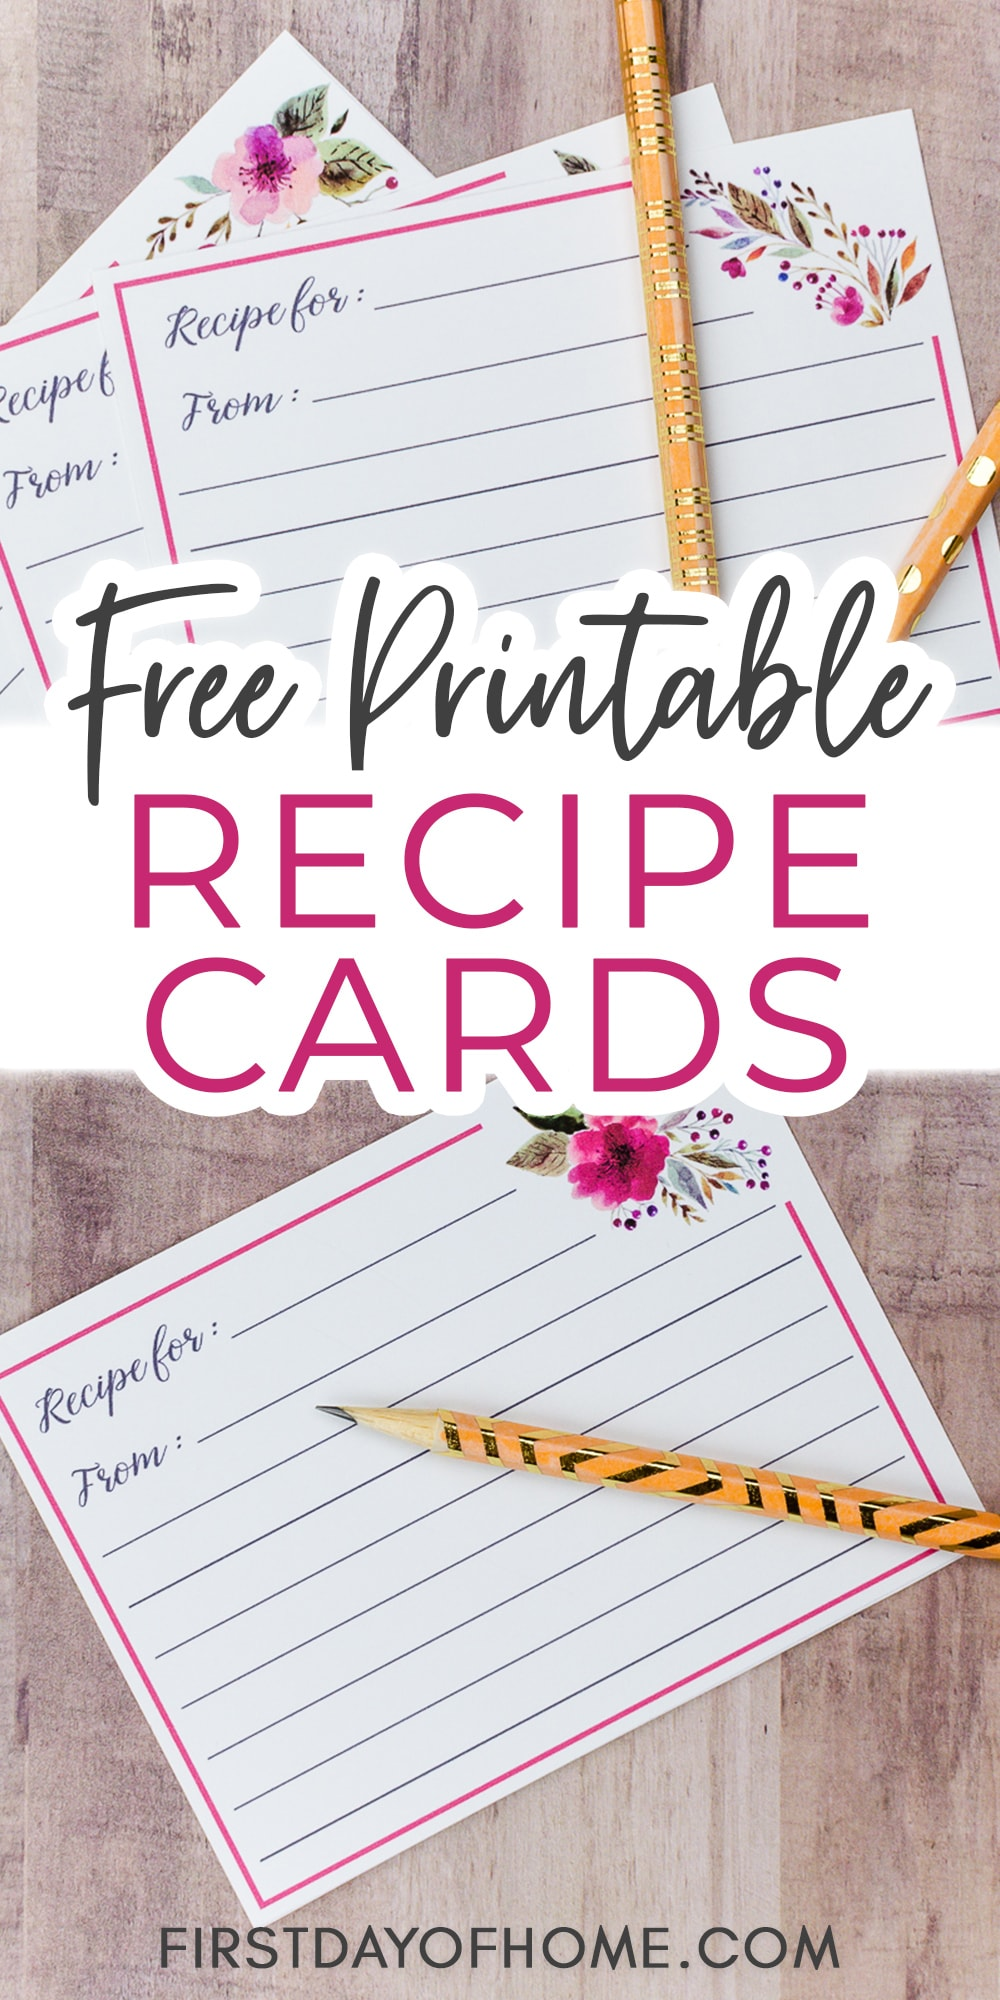 """Printed recipe cards with floral pattern and text overlay reading """"Free Printable Recipe Cards"""""""